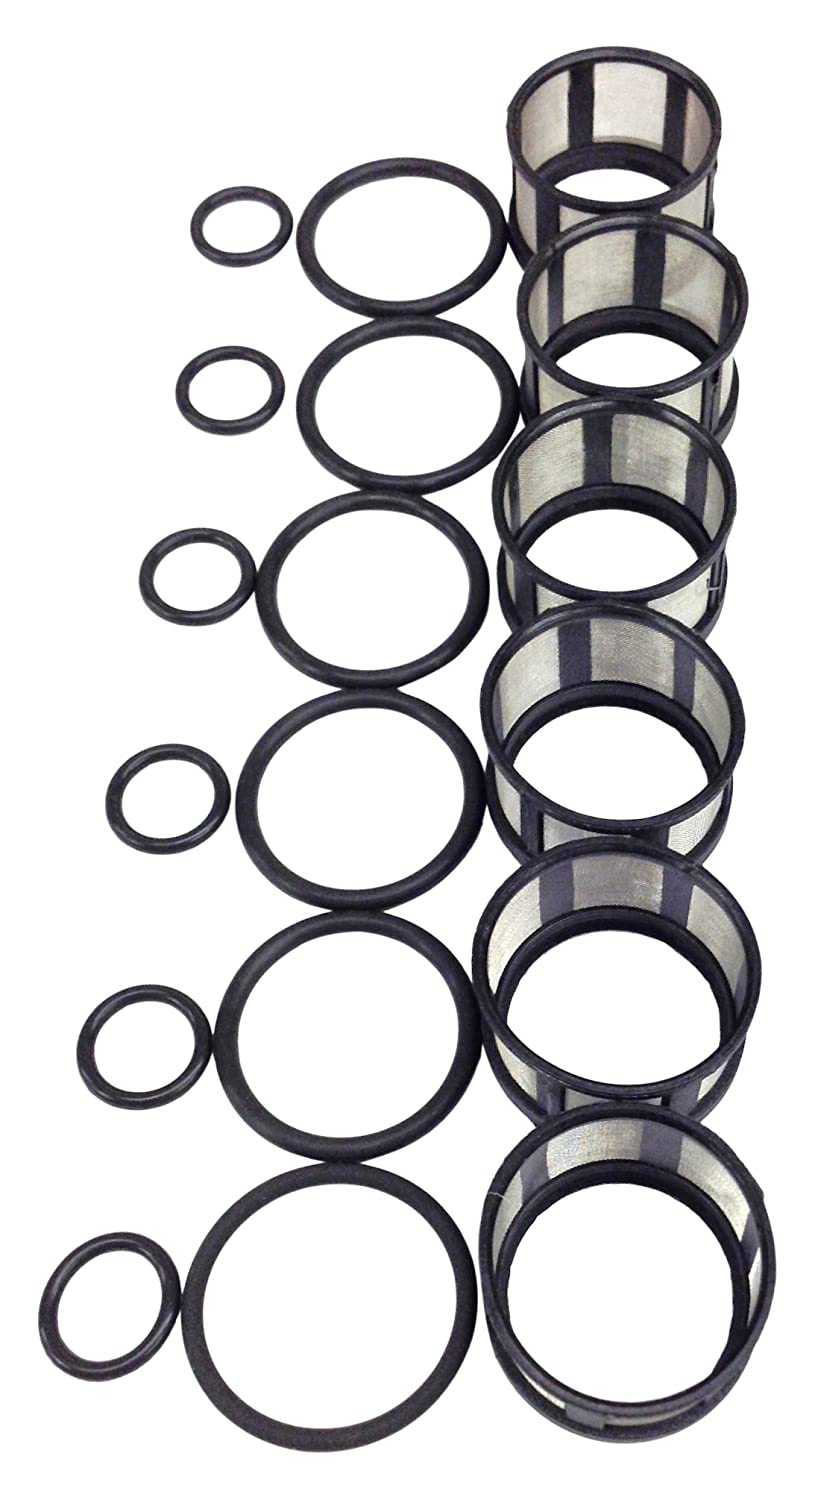 UREMCO 28-6 Fuel Injector Seal Kit, 1 Pack